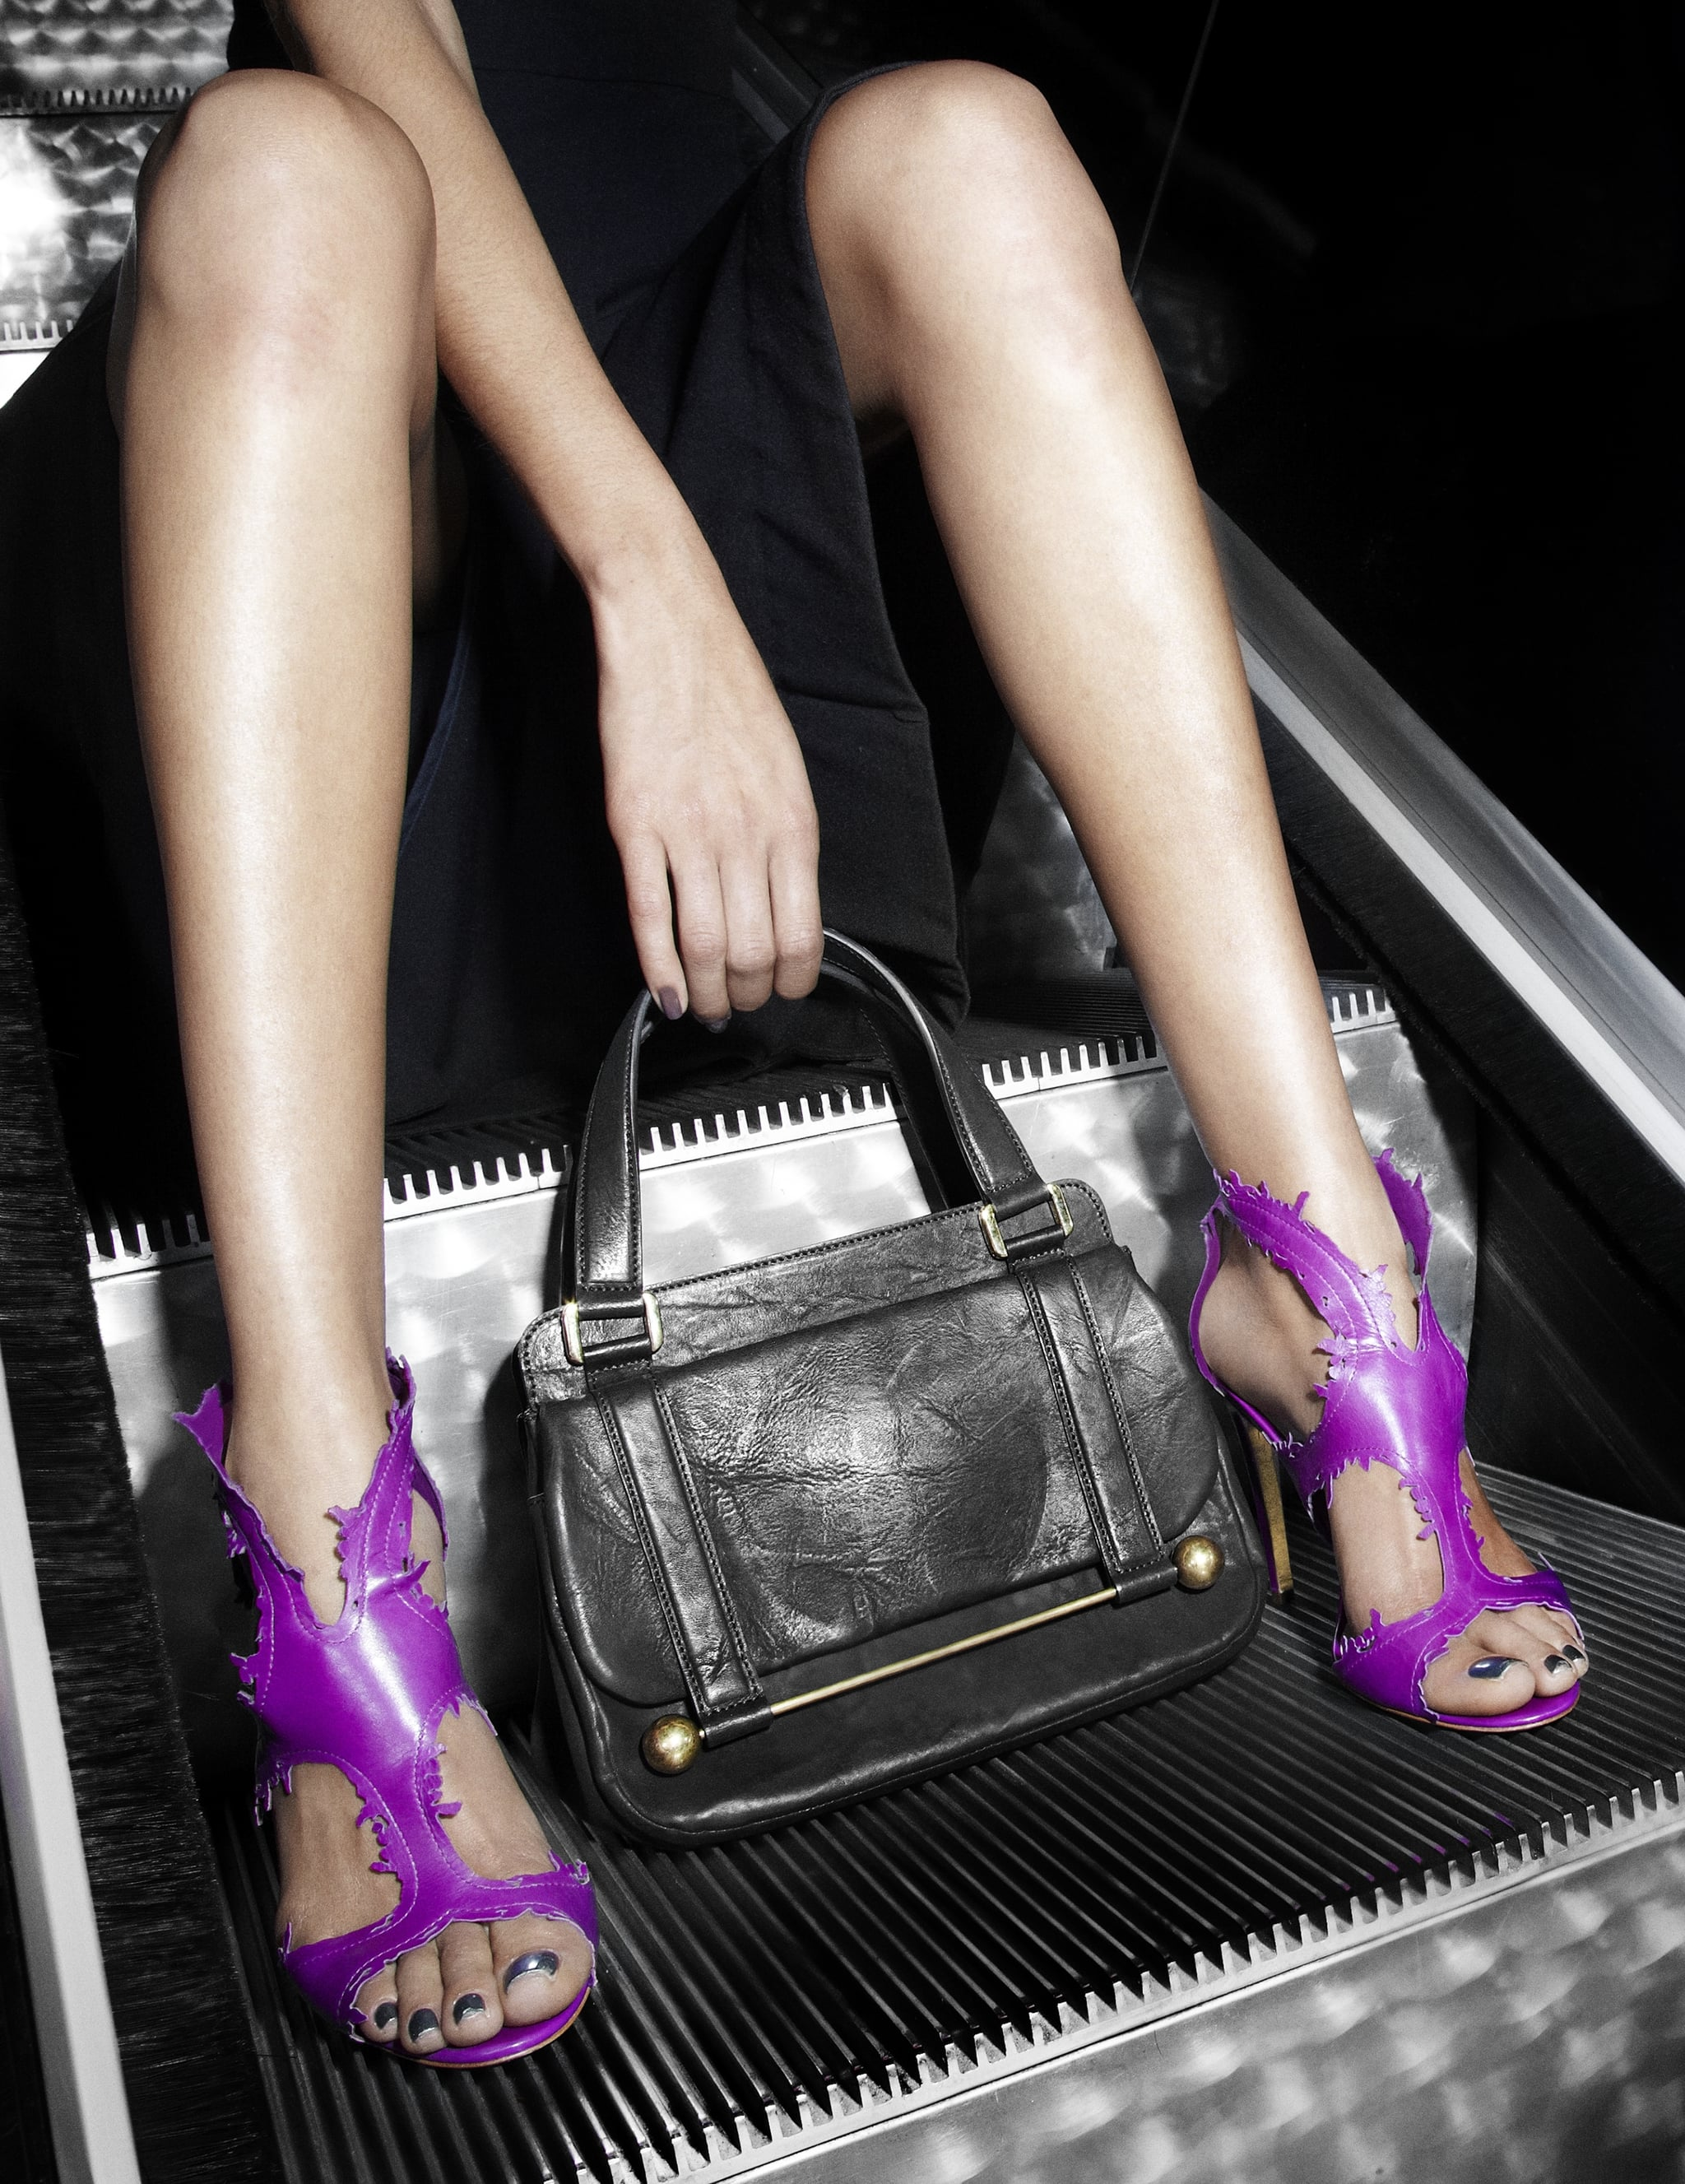 Another hot escalator shot (who knew it could be such a chic backdrop?), but this time with the purple Webii sandals and Leonora bag.  Photos courtesy of Rupert Sanderson